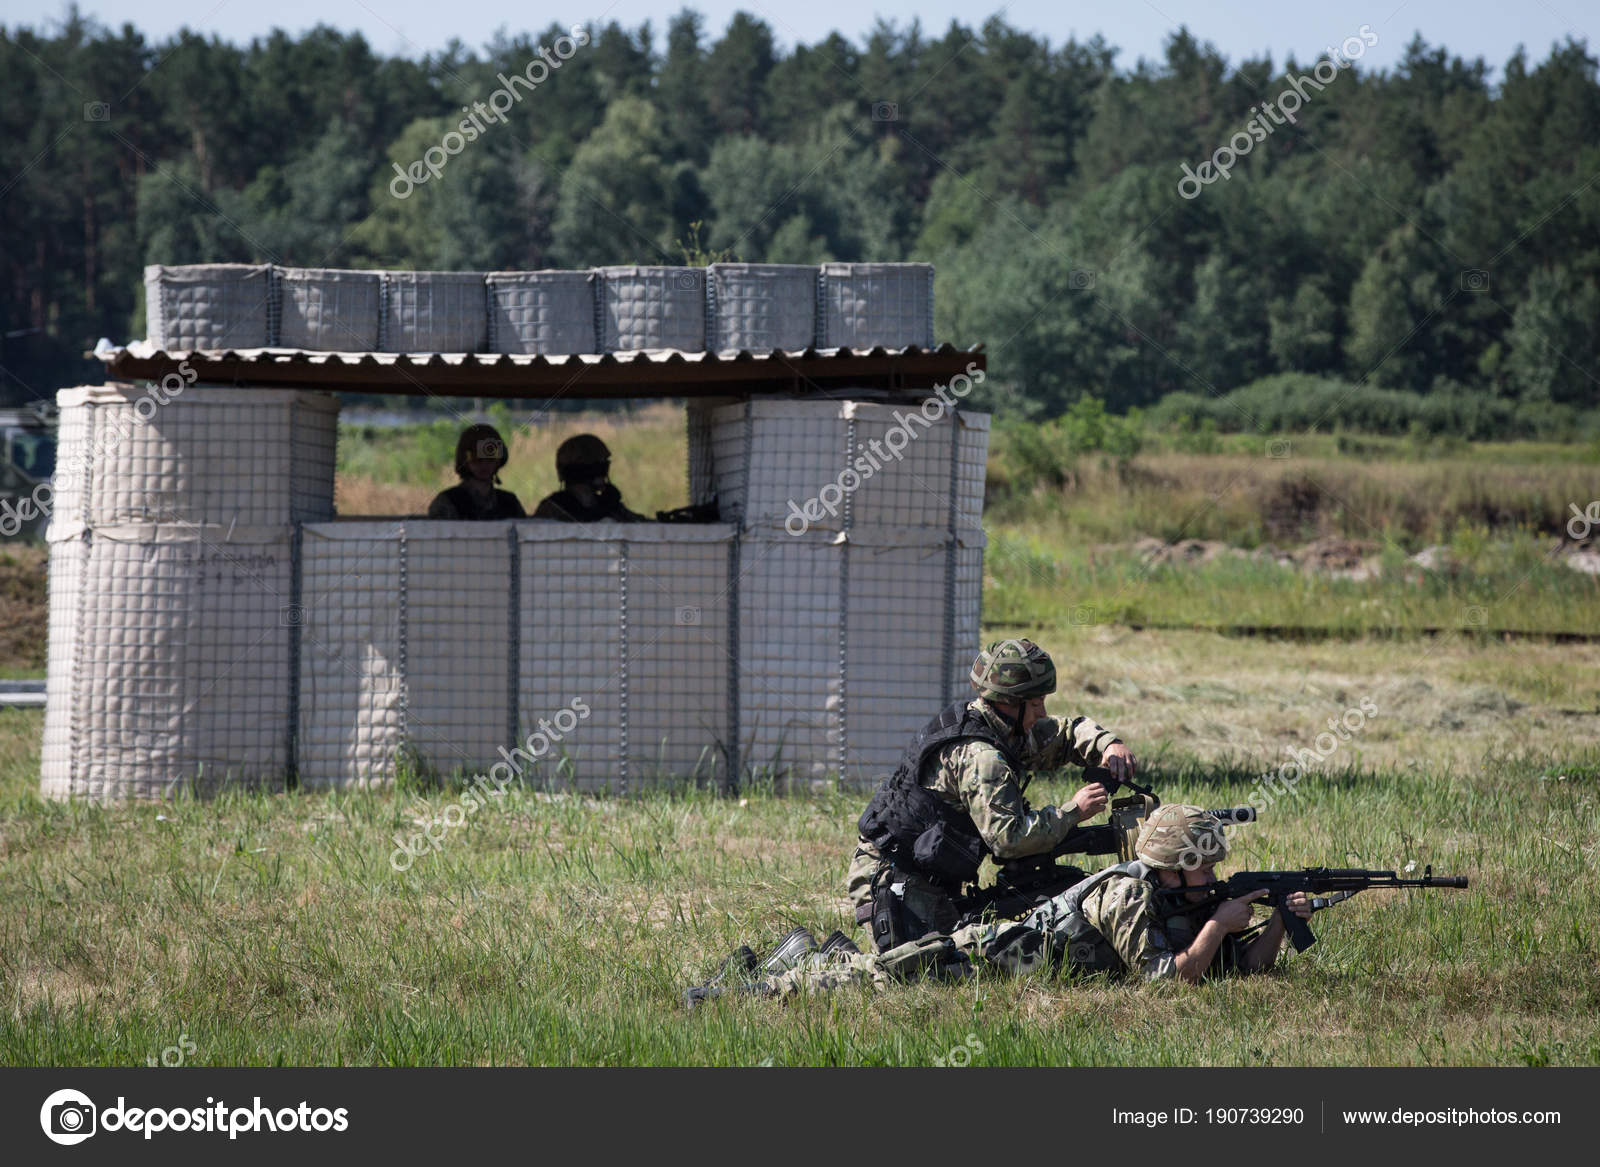 Service and combat training of special forces on the range